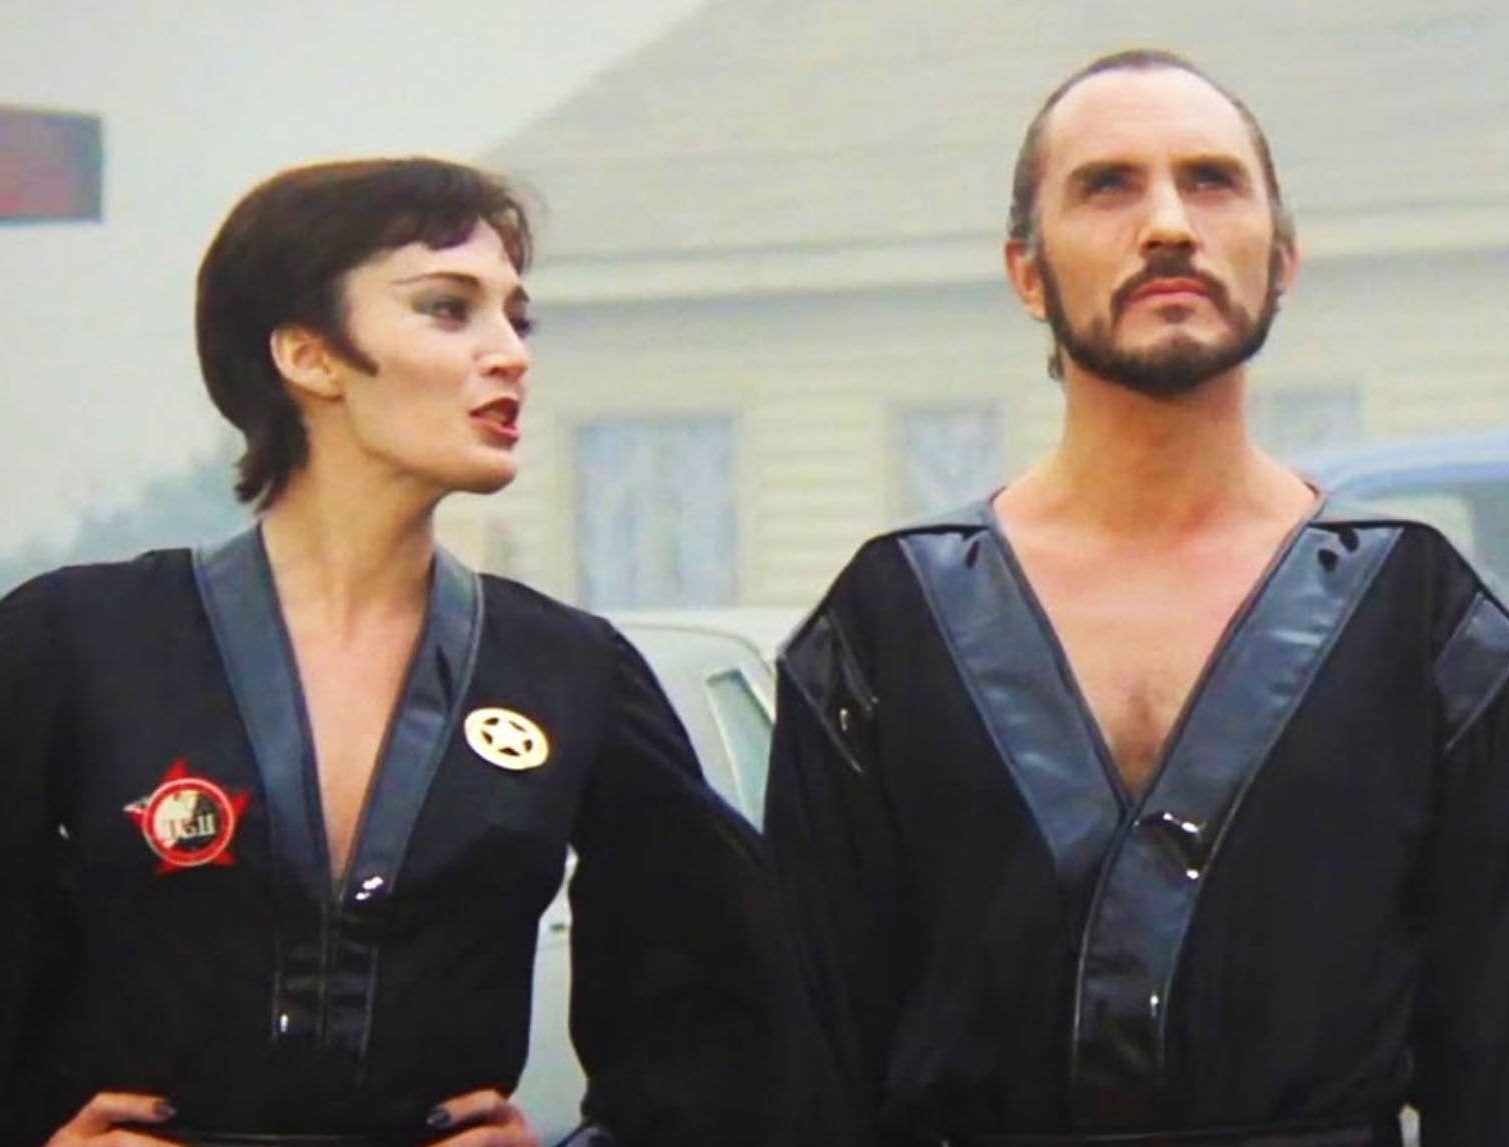 general zod in superman ii e1605607603409 20 Characters That Scared The Life Out Of Us As Children